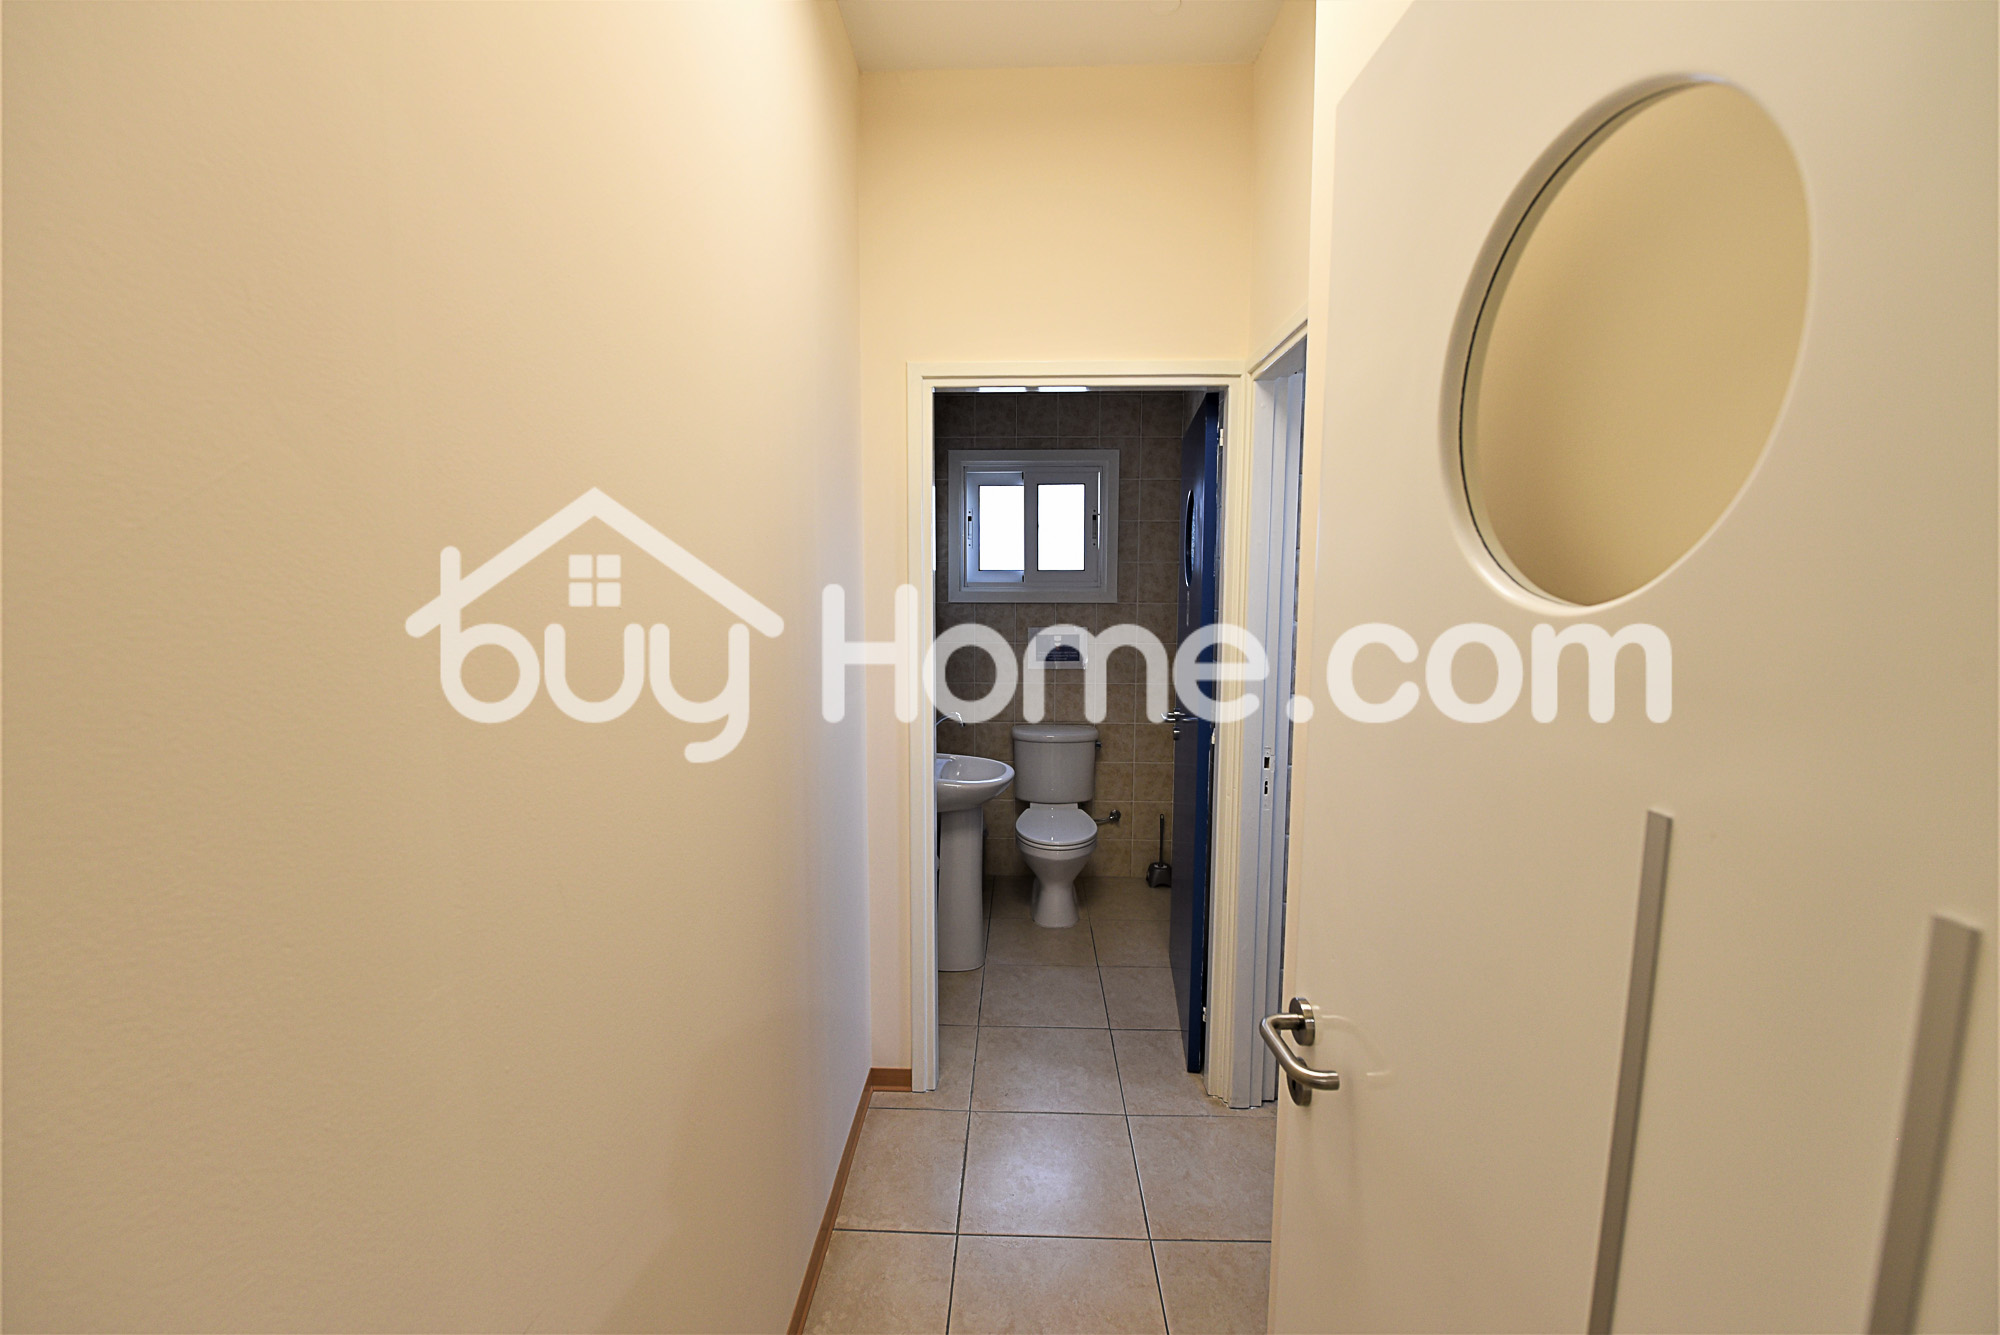 Spacious offices for rent | BuyHome